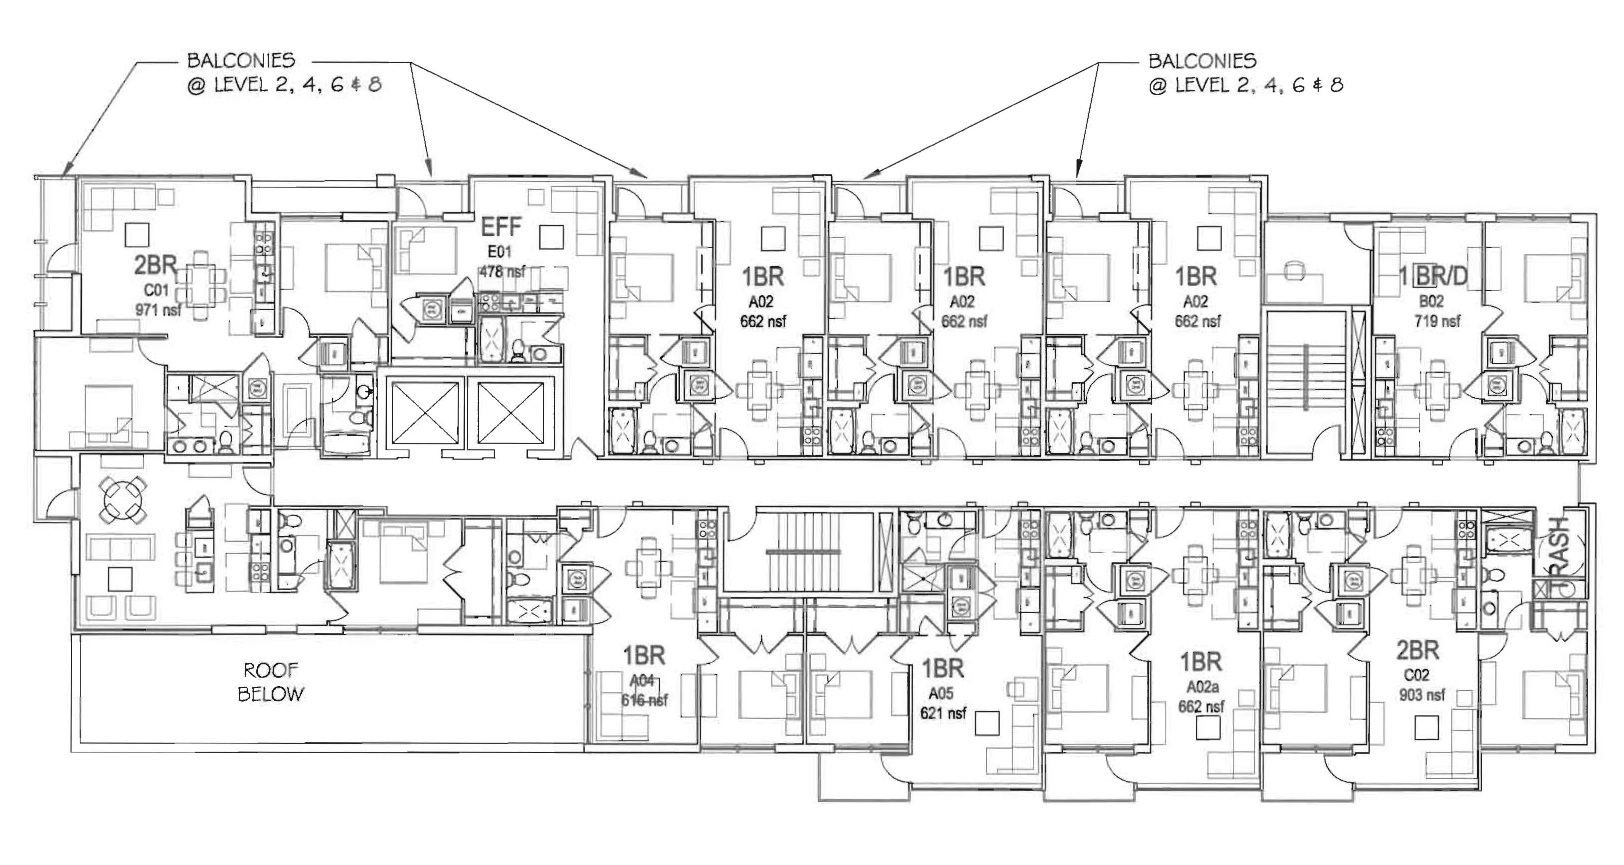 Apartments Floor Plans dimentions. modern apartment building plans d s furniture. other